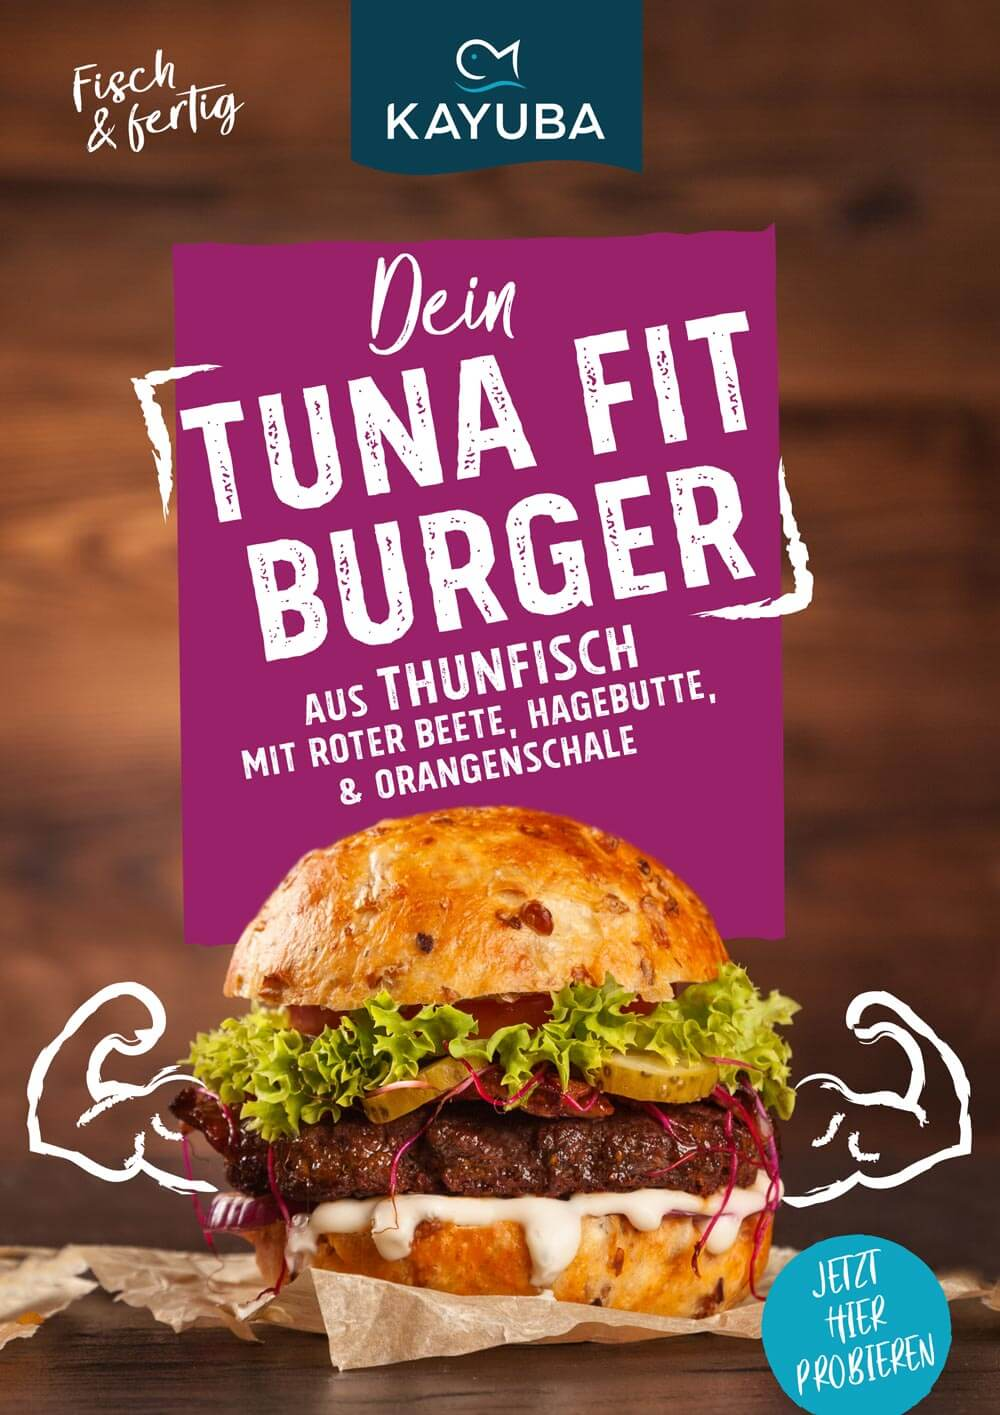 Kayuba Plakat Fischburger thunfisch tuna fit burger